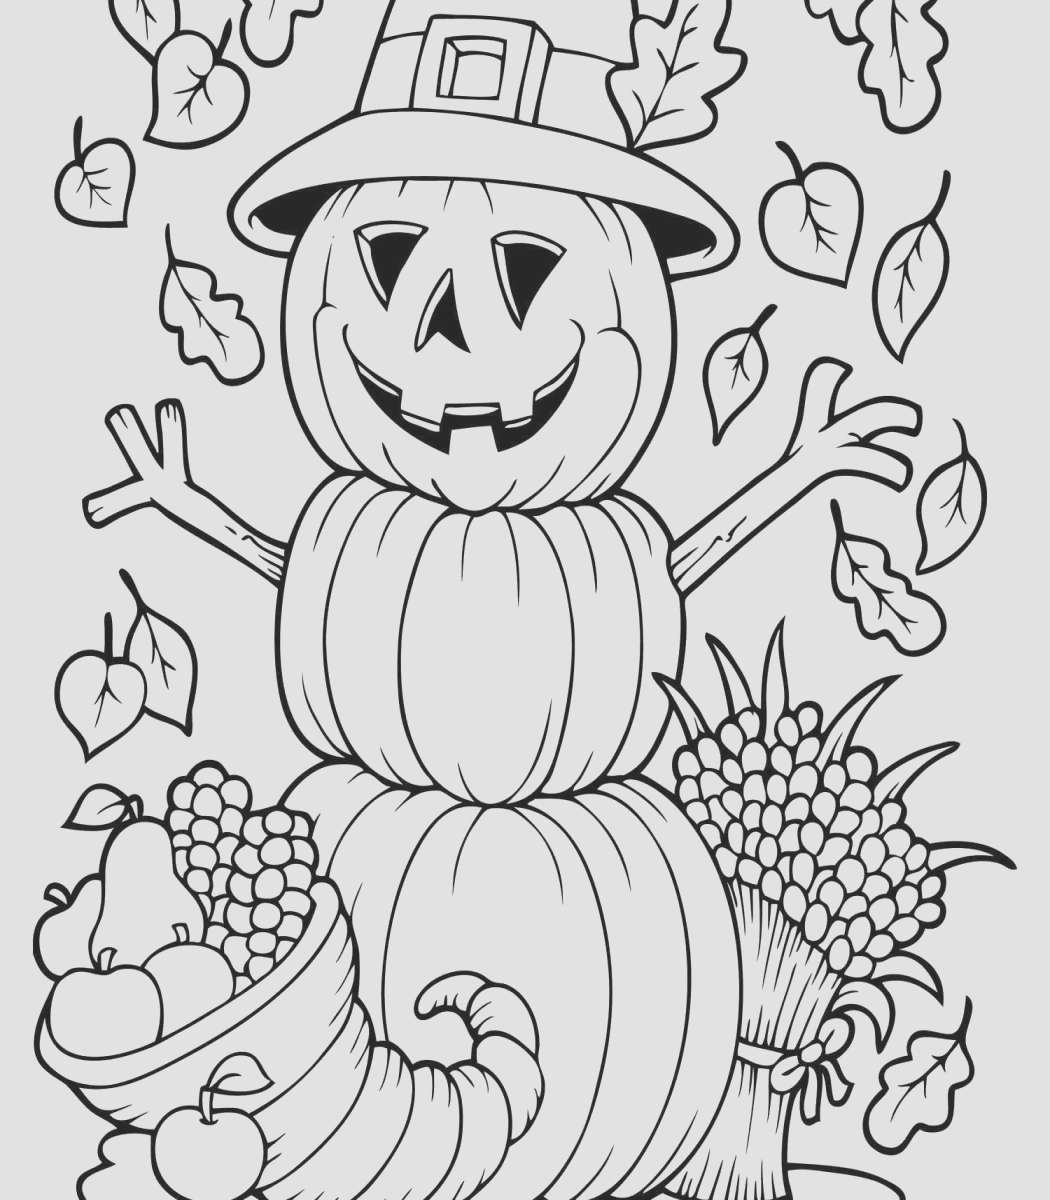 Free Fall Coloring Pages 9 11 Coloring Sheets Free Autumn And Fall Coloring Pages Toiyeuembiz Birijus Com